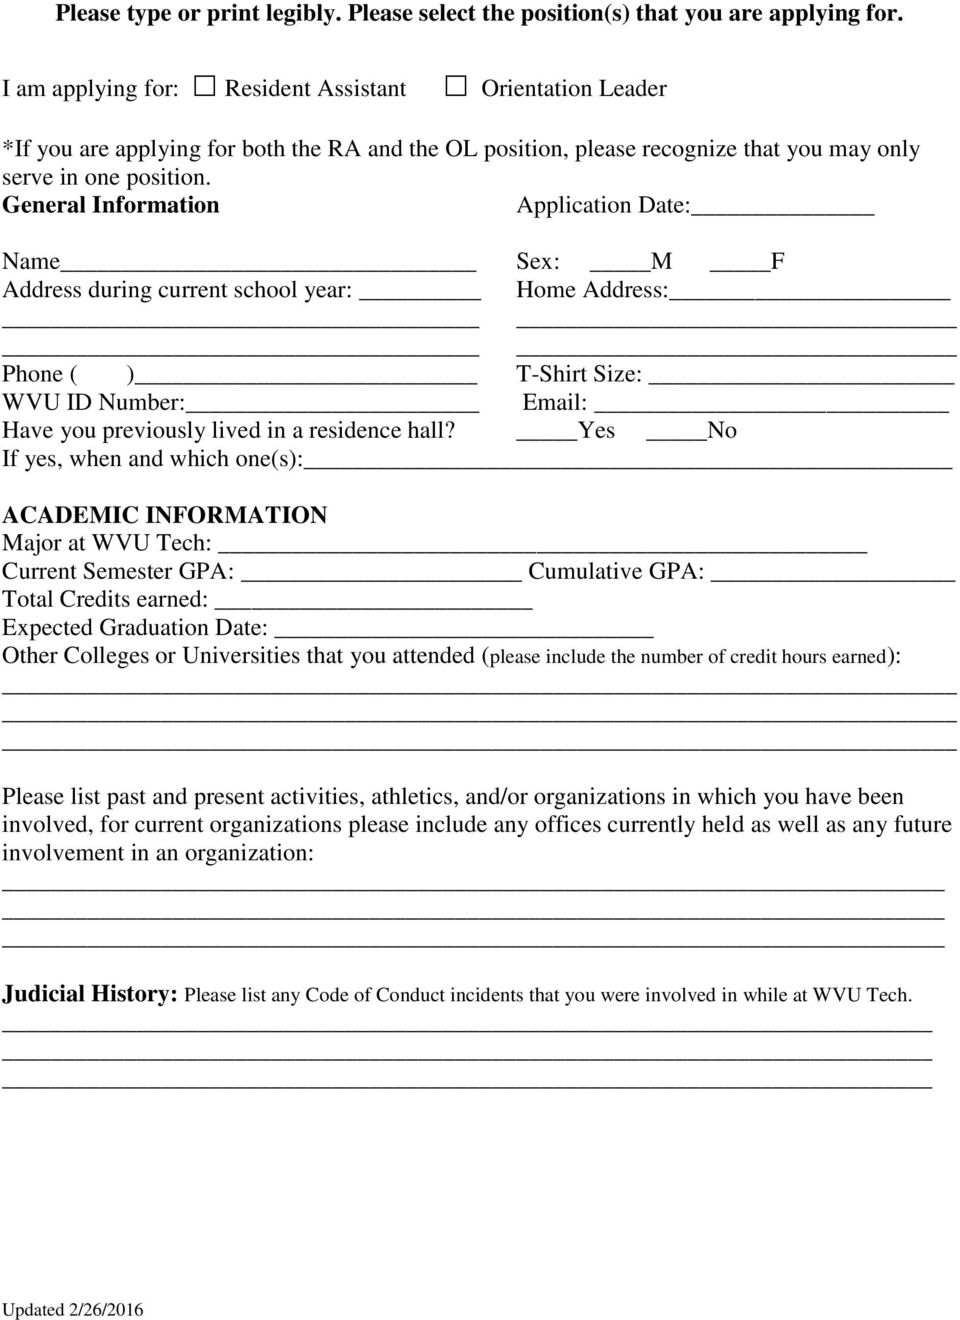 General Information Application Date: Name Sex: M F Address during current school year: Home Address: Phone ( ) T-Shirt Size: WVU ID Number: Email: Have you previously lived in a residence hall?